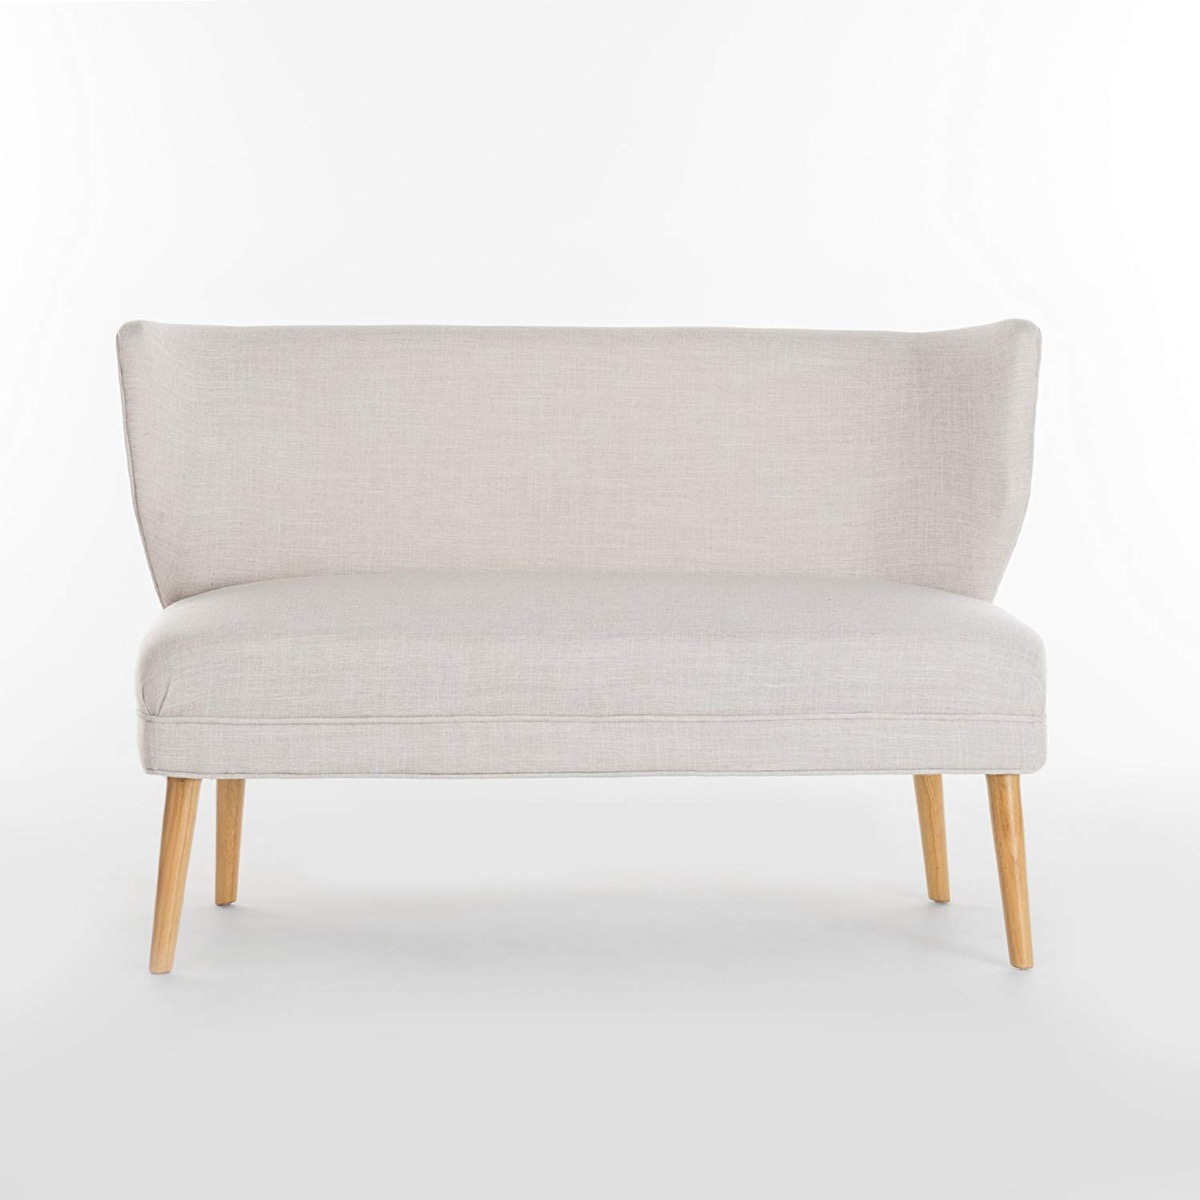 Dining-Settee-Bench-With-Back-Upholstered-Beige-Off-White-With-Skinny-Wood-Legs